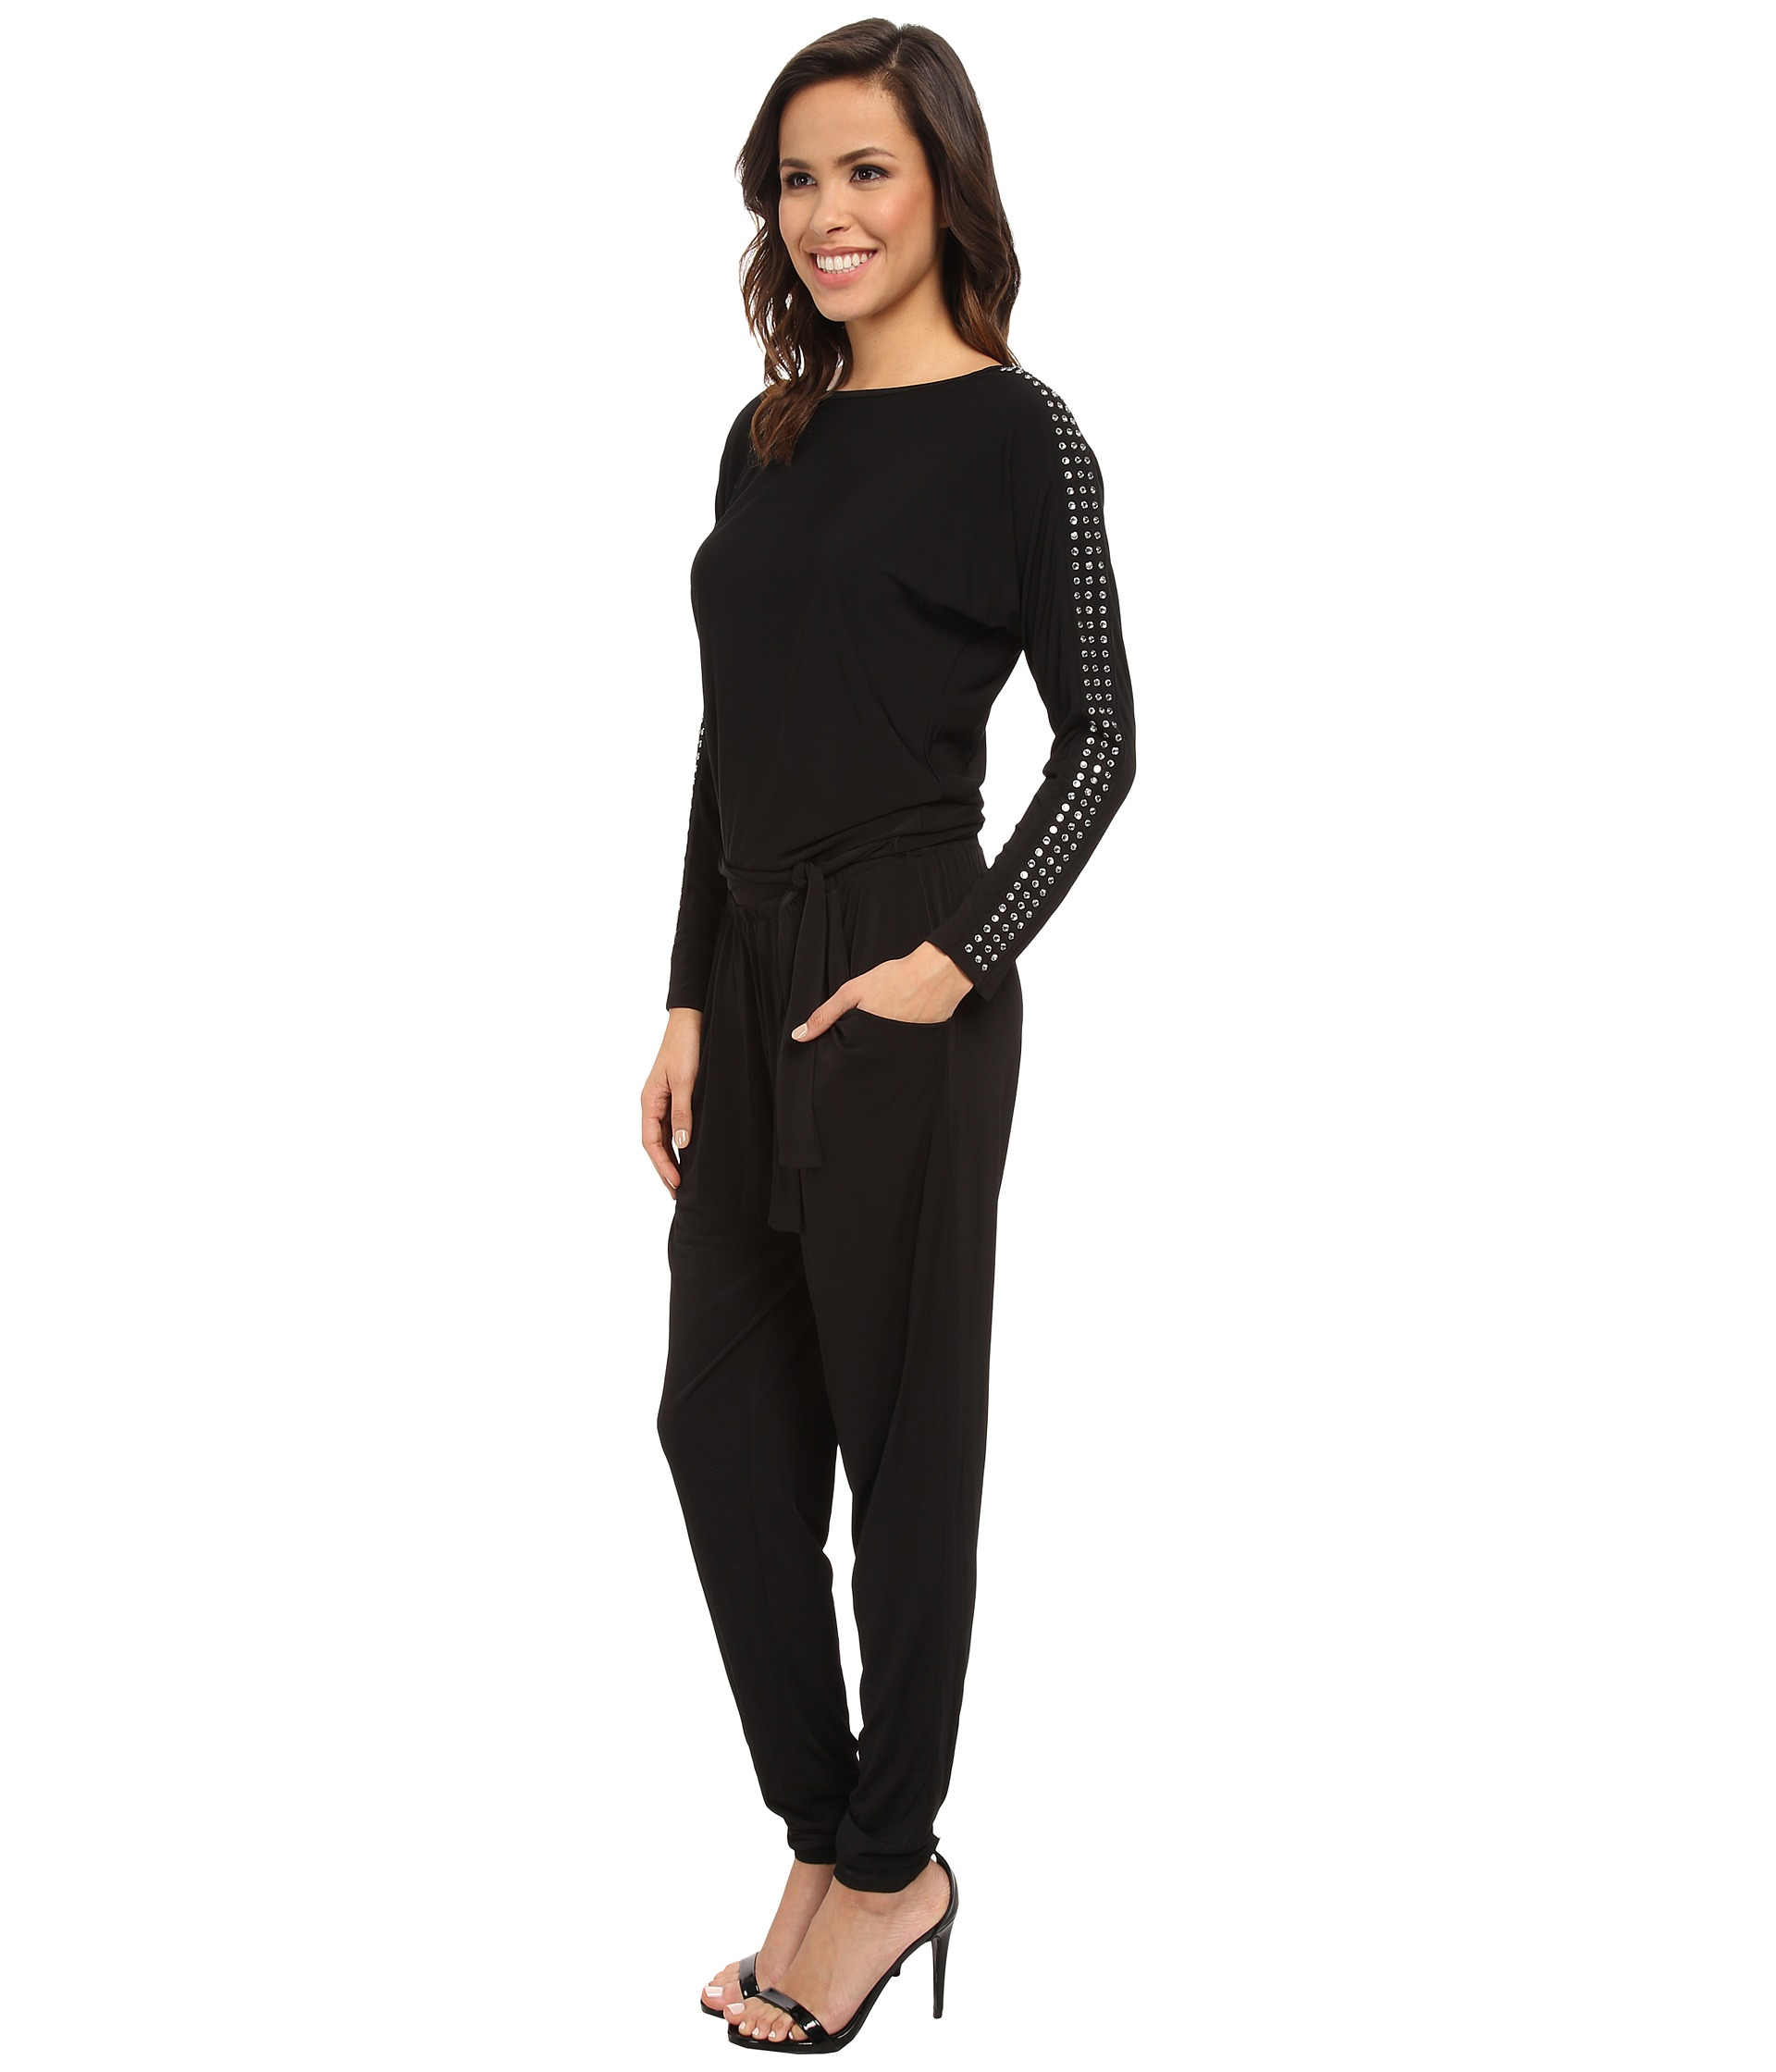 Michael Kors Black Jumpsuit, Michael Kors Wrap Front Jumpsuit, Size XS, Black MK It has a very feminine, wrap neckline with a snap. It will make a perfect composition with high heels and leather jacket.